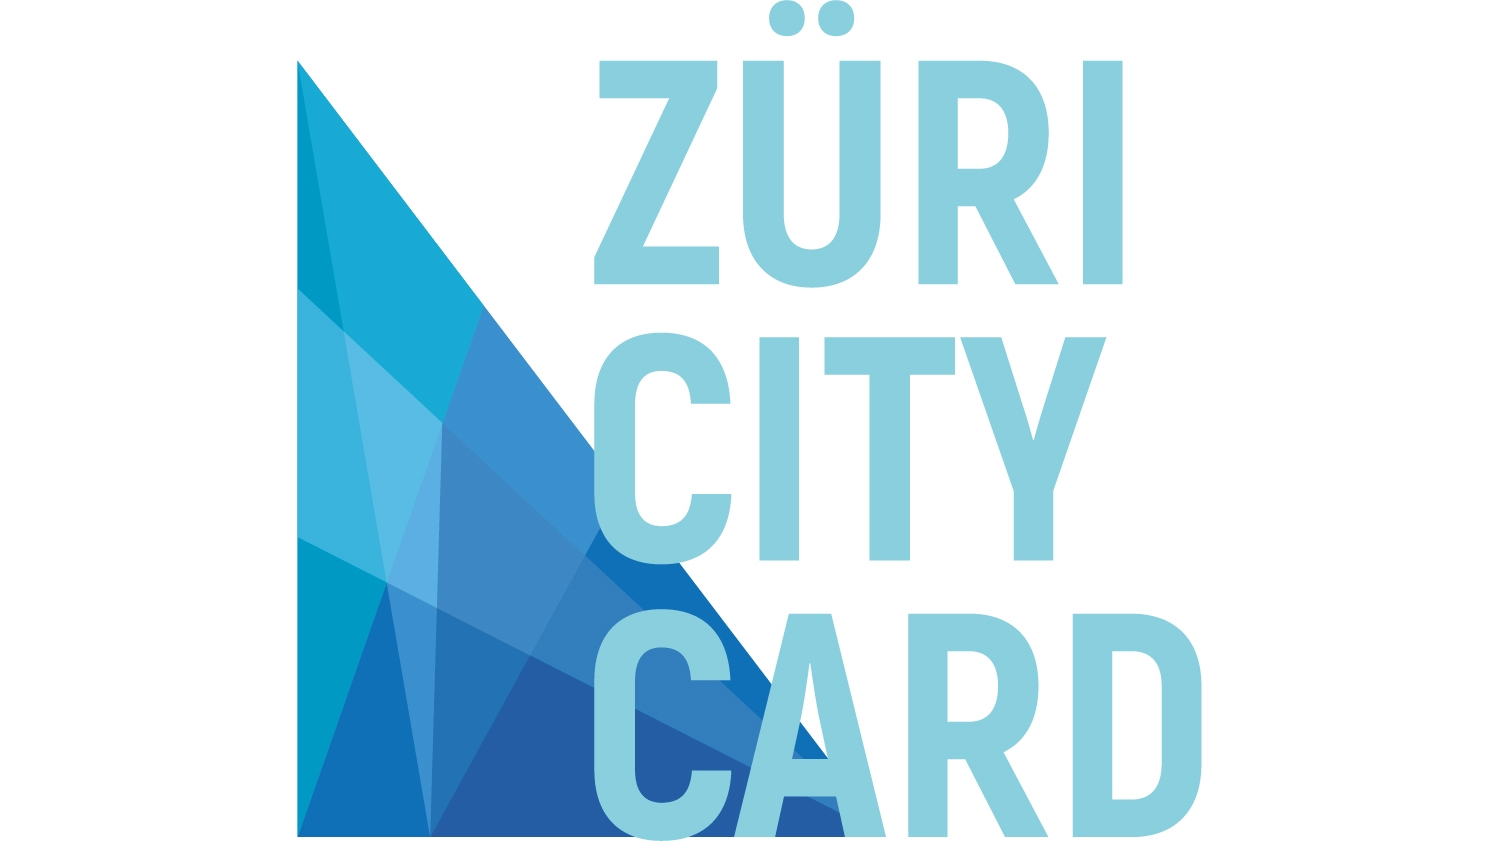 Züri City Card